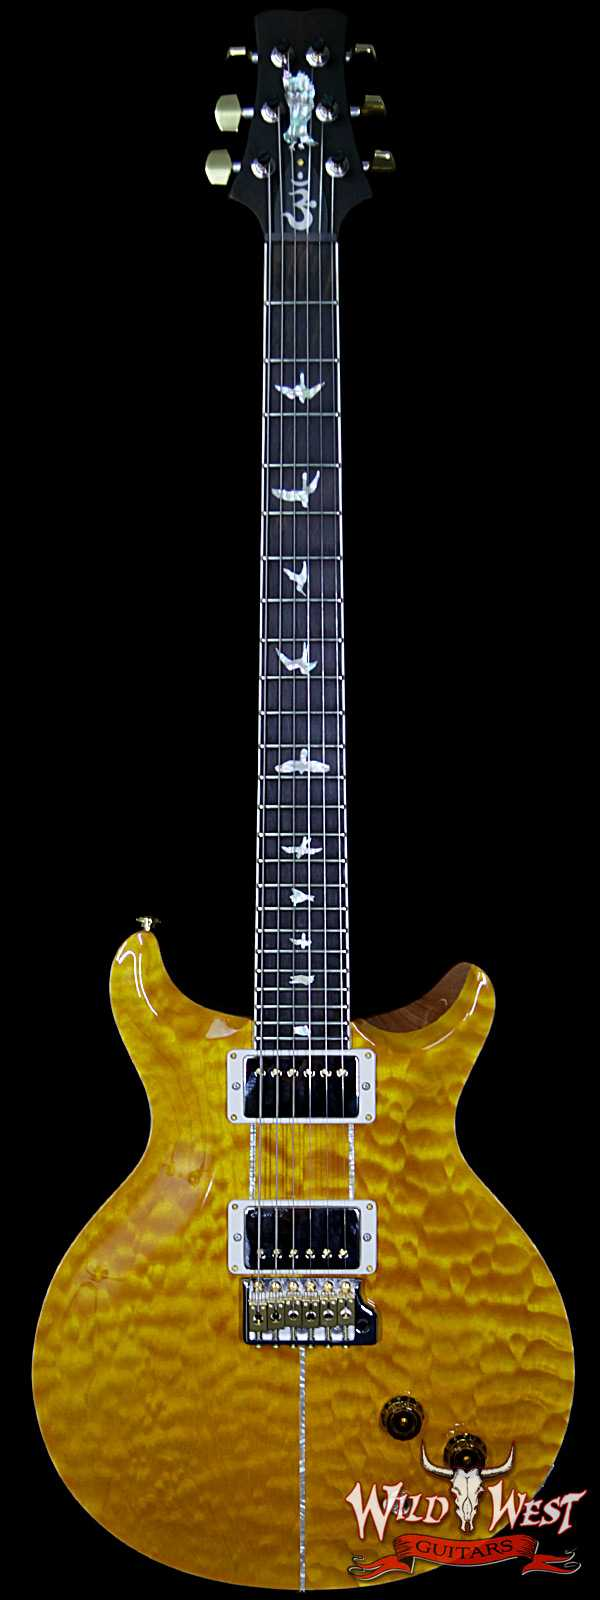 PRS Wood Library Santana Retro Quilt Top Flame Mahogany Neck Brazilian Rosewood Board Santana Yellow